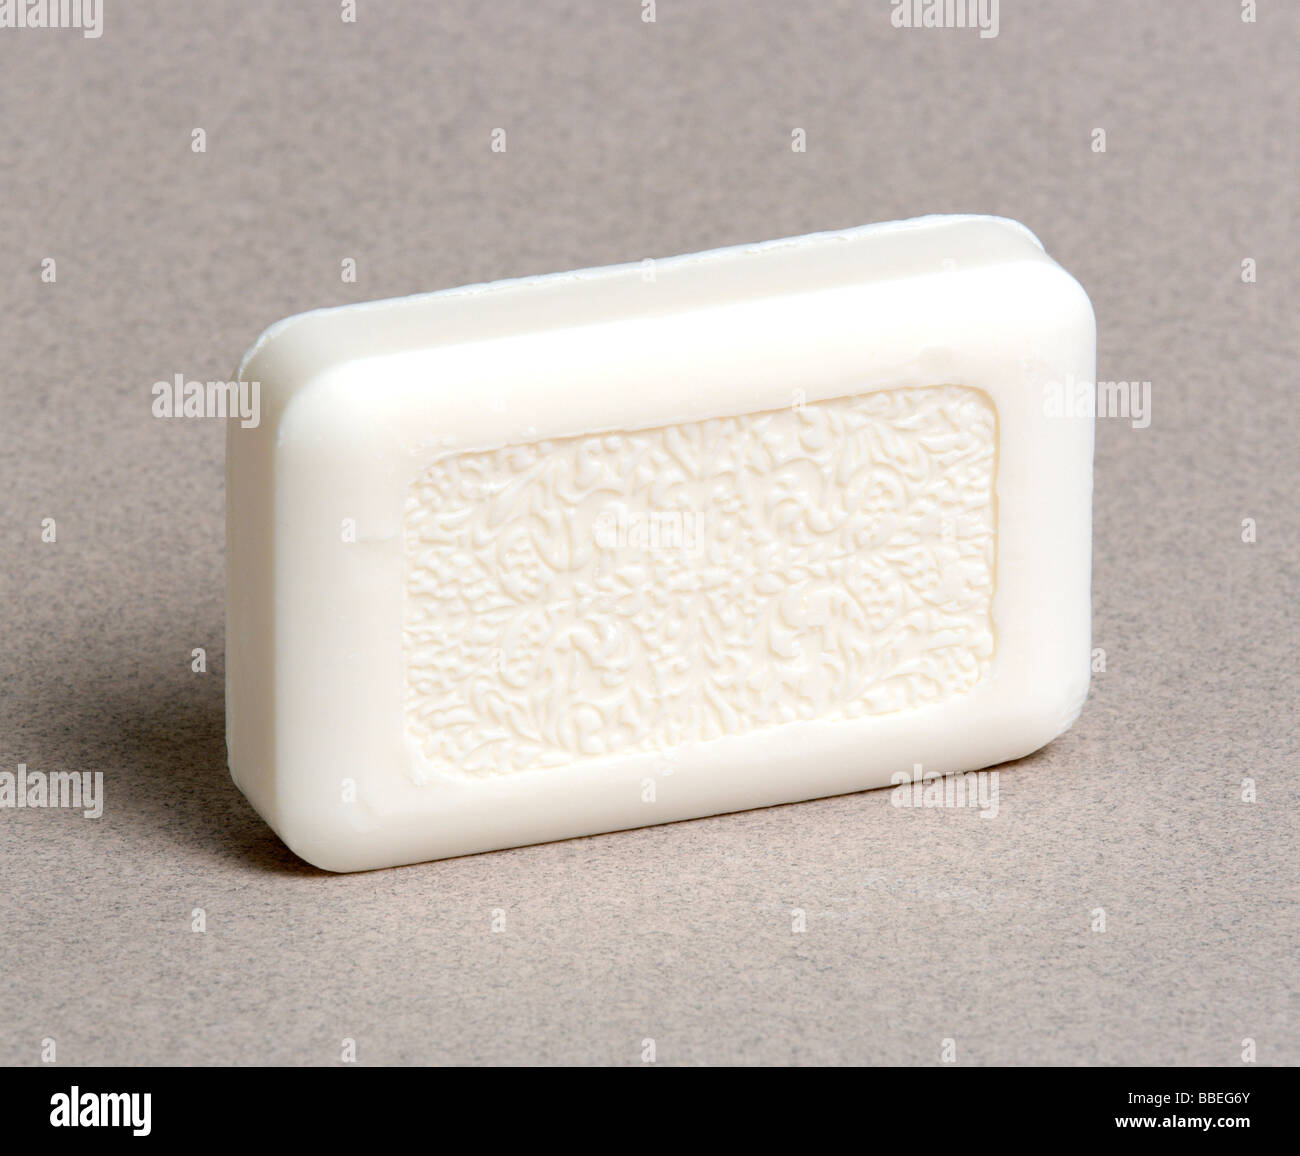 HEALTH Hygiene Cleanliness A traditional bar of white soap. - Stock Image